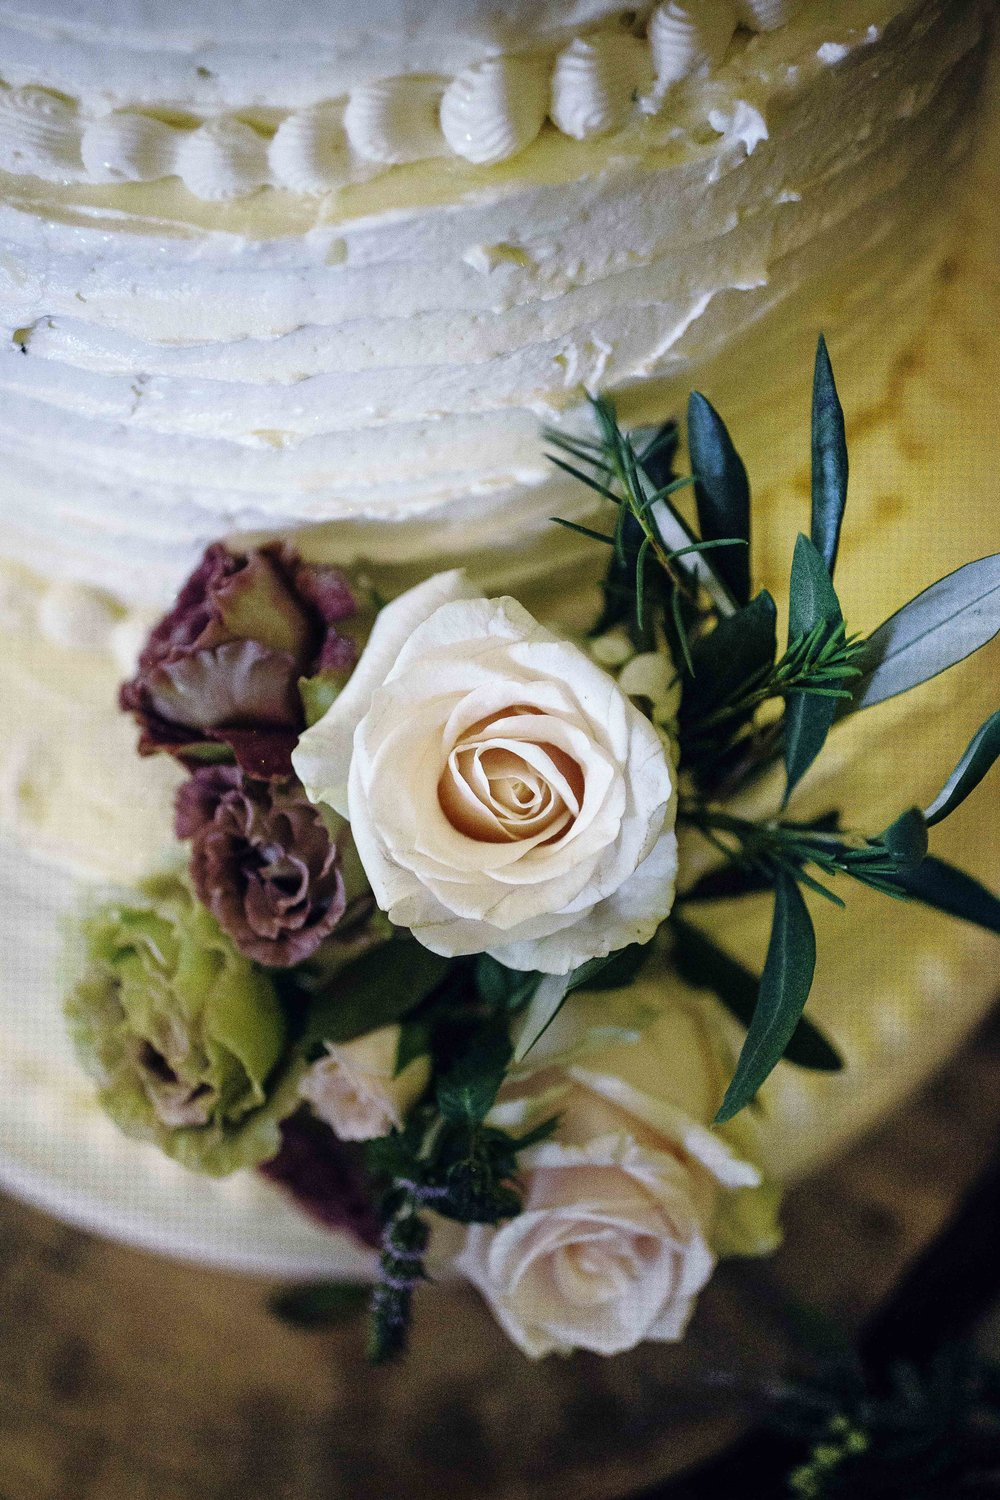 fresh flower wedding cake decoration.jpg